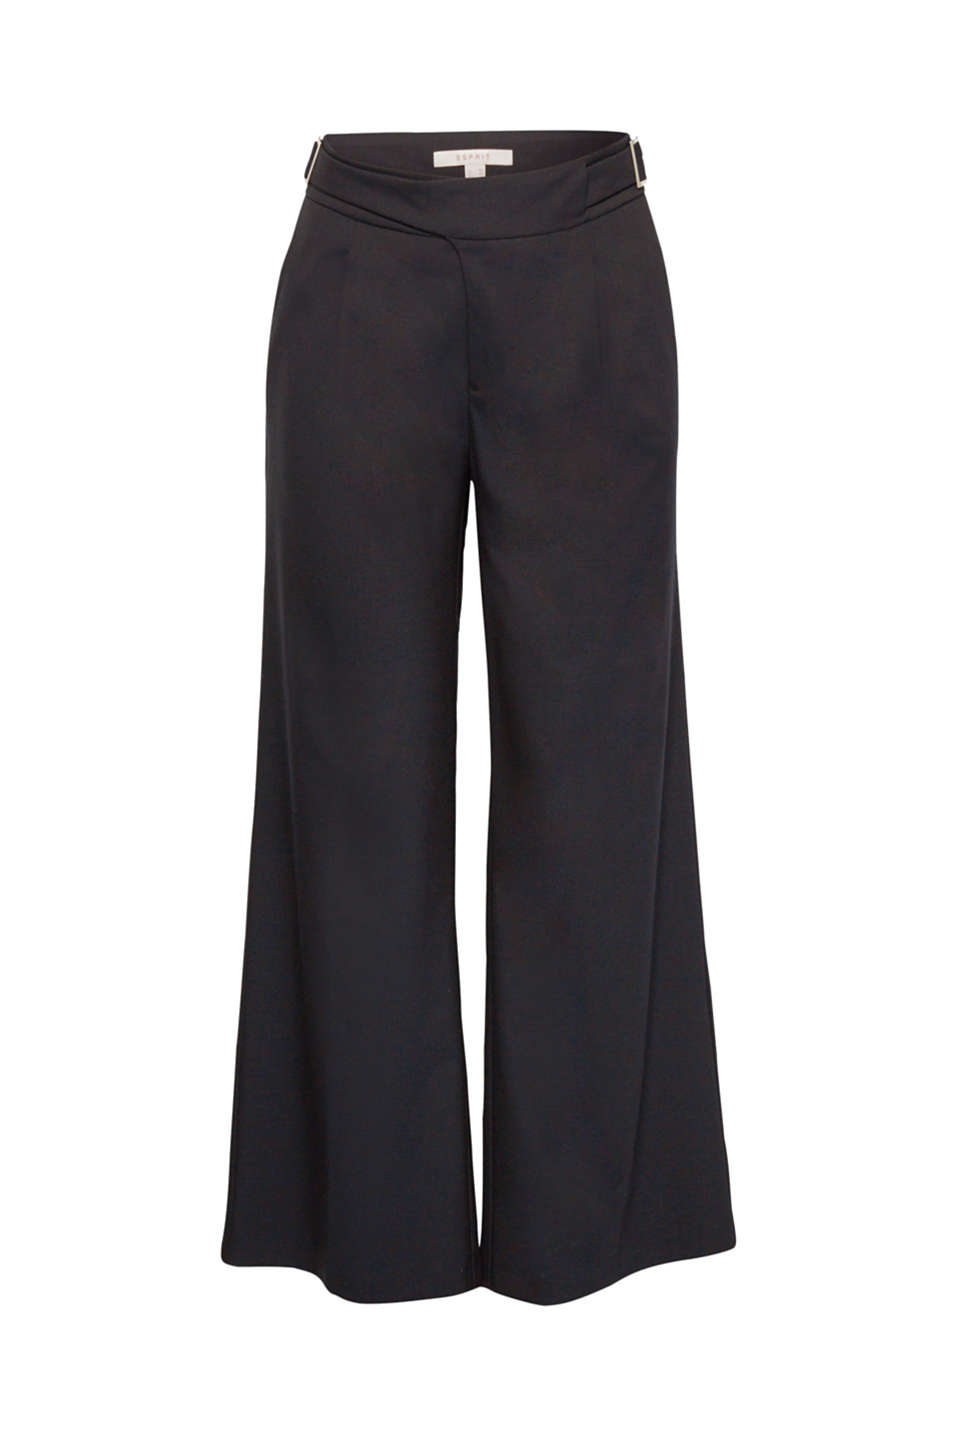 Fashion piece: these woven stretch trousers create a beautiful silhouette and a stylish look thanks to the unique leg width and waist-accentuating straps at the waistband!